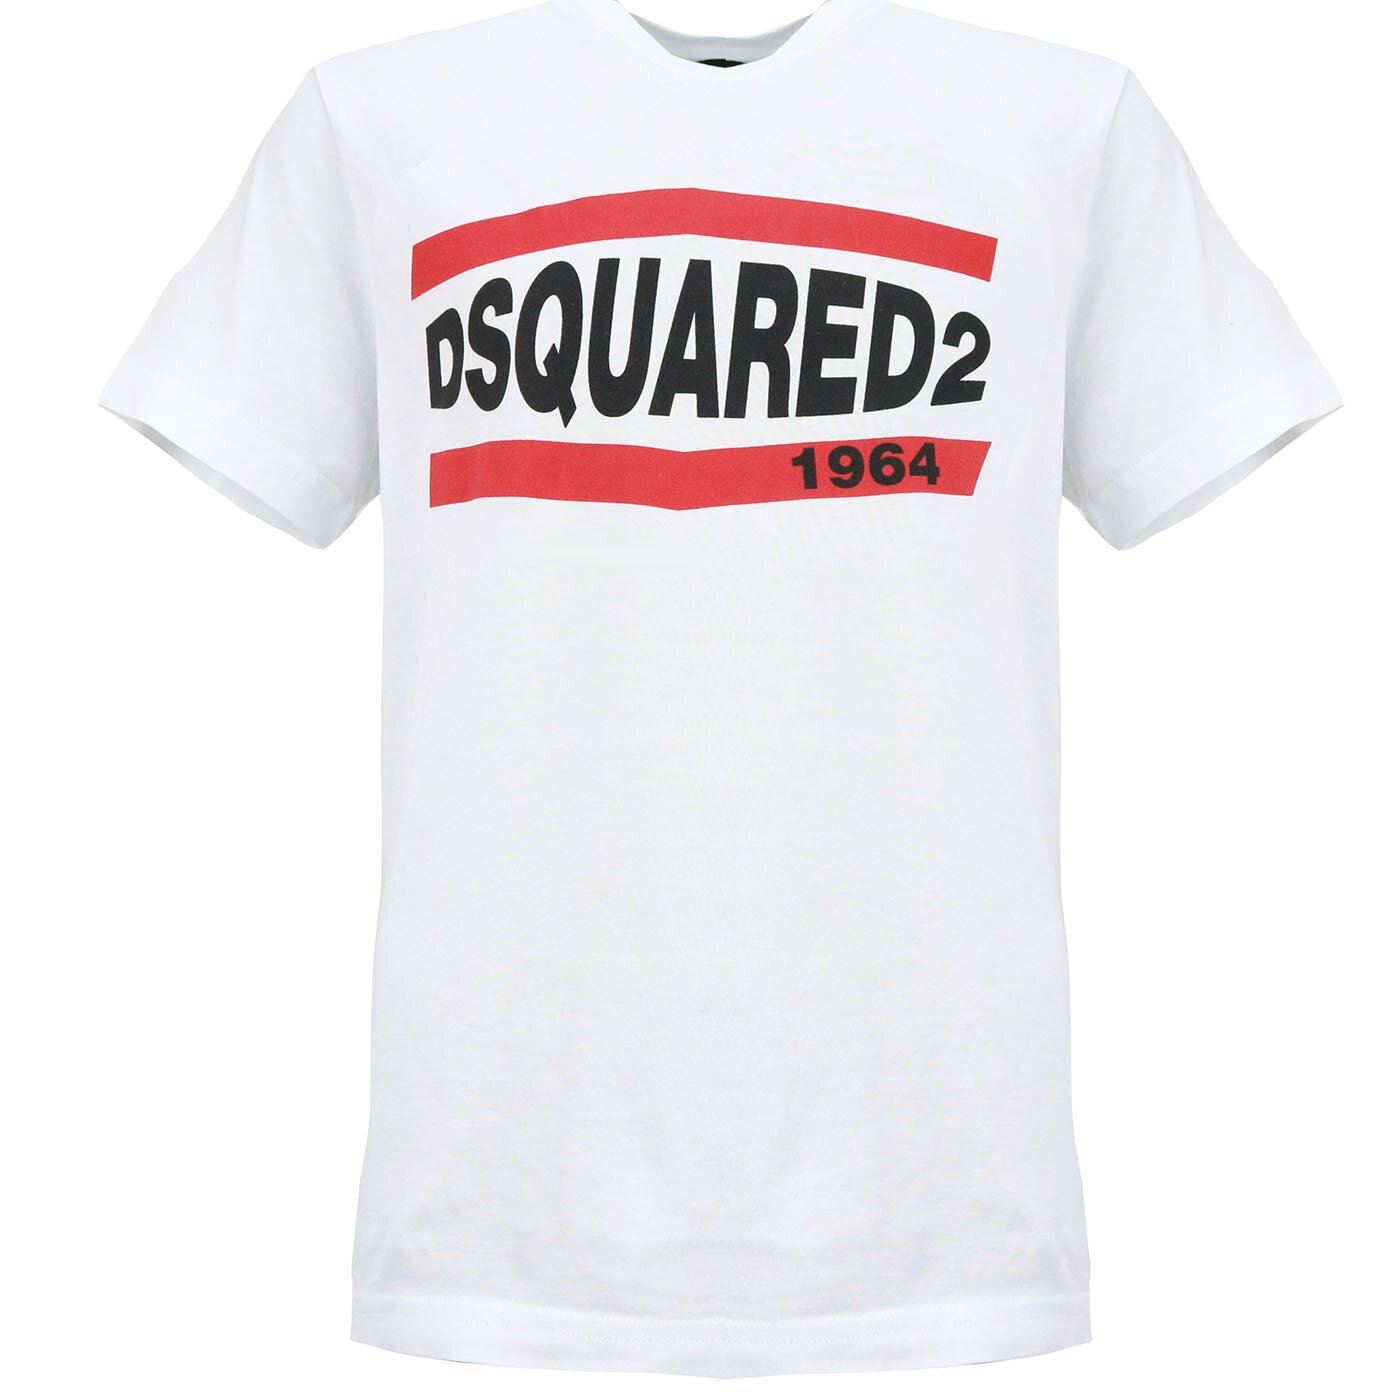 Dsquared2 Shirt 1964 Wit relax fit